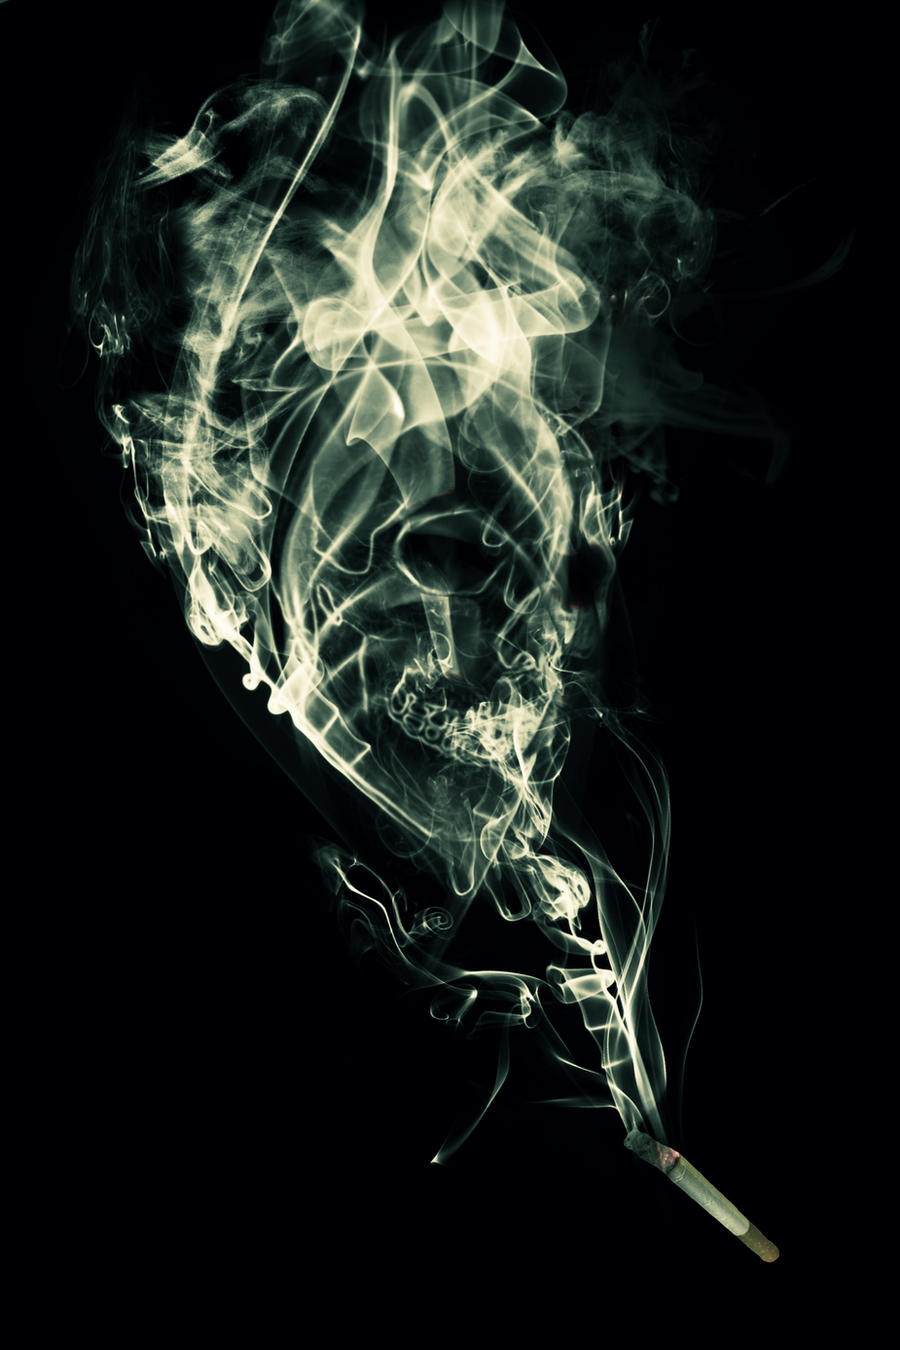 Deathly smoke by Imperfection22